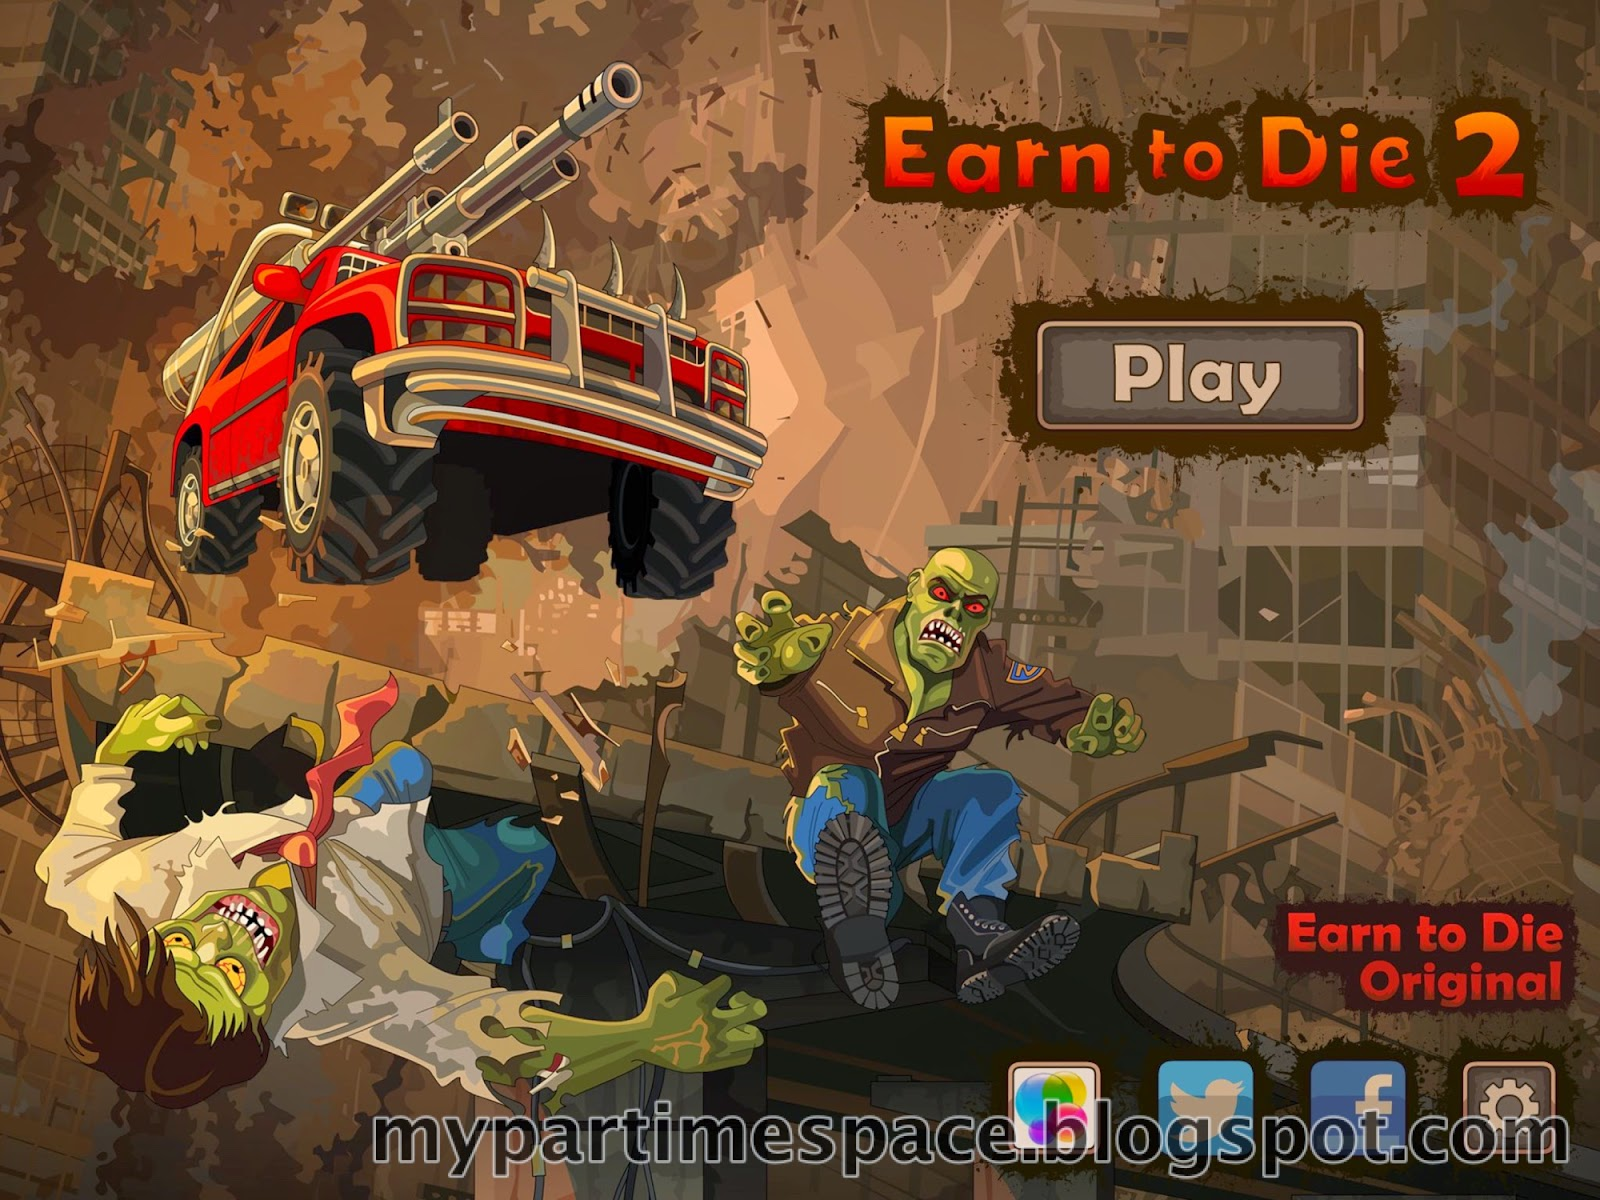 Earn to Die 2 Review